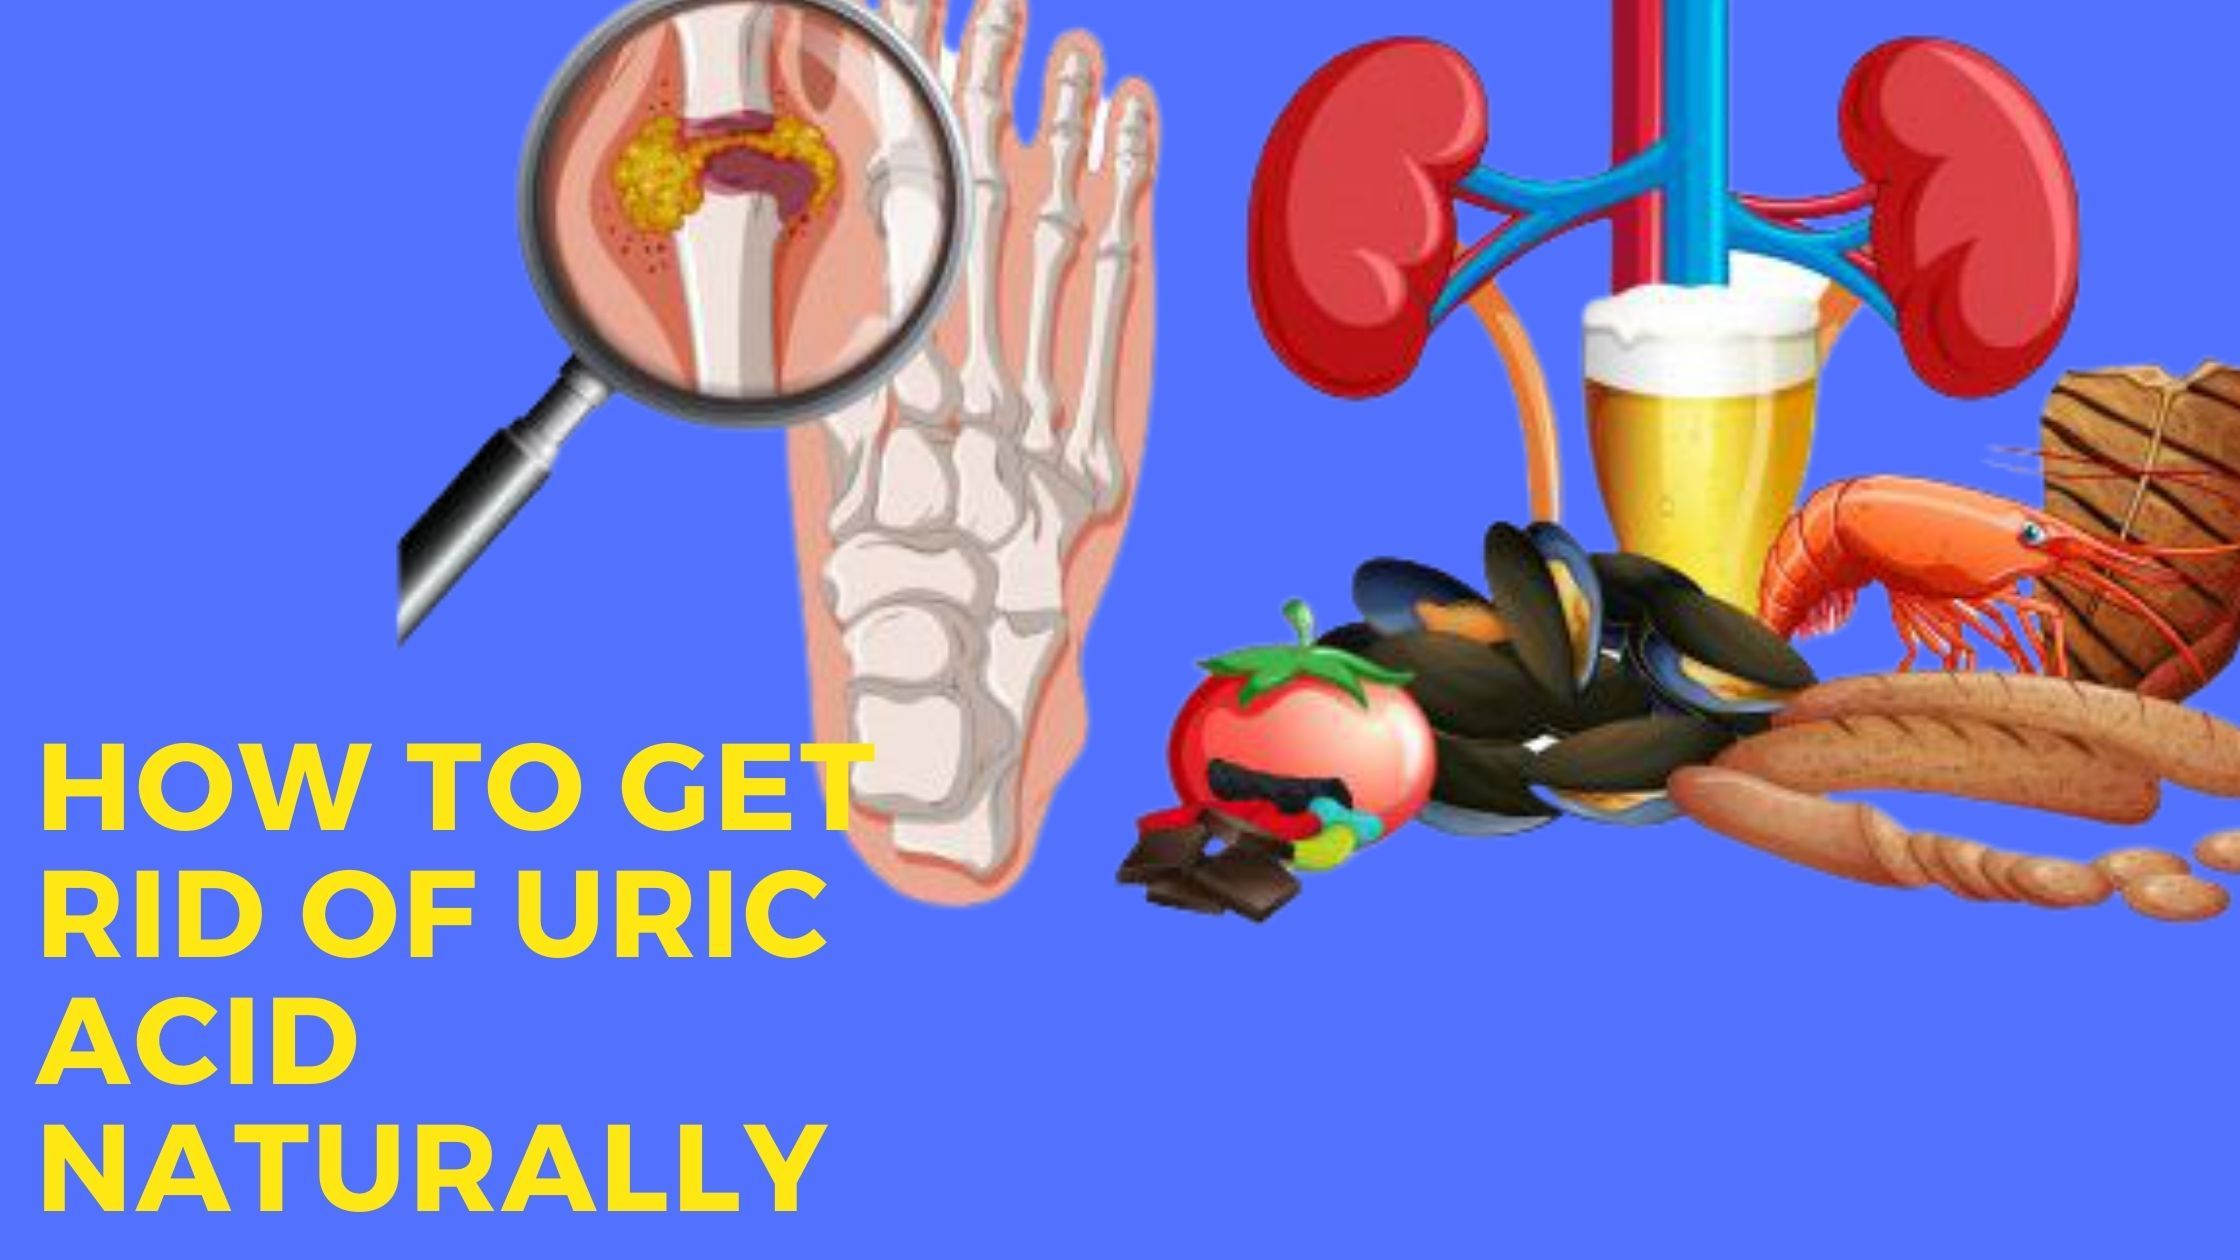 How To Get Rid Of Uric Acid Naturally The Easy Way